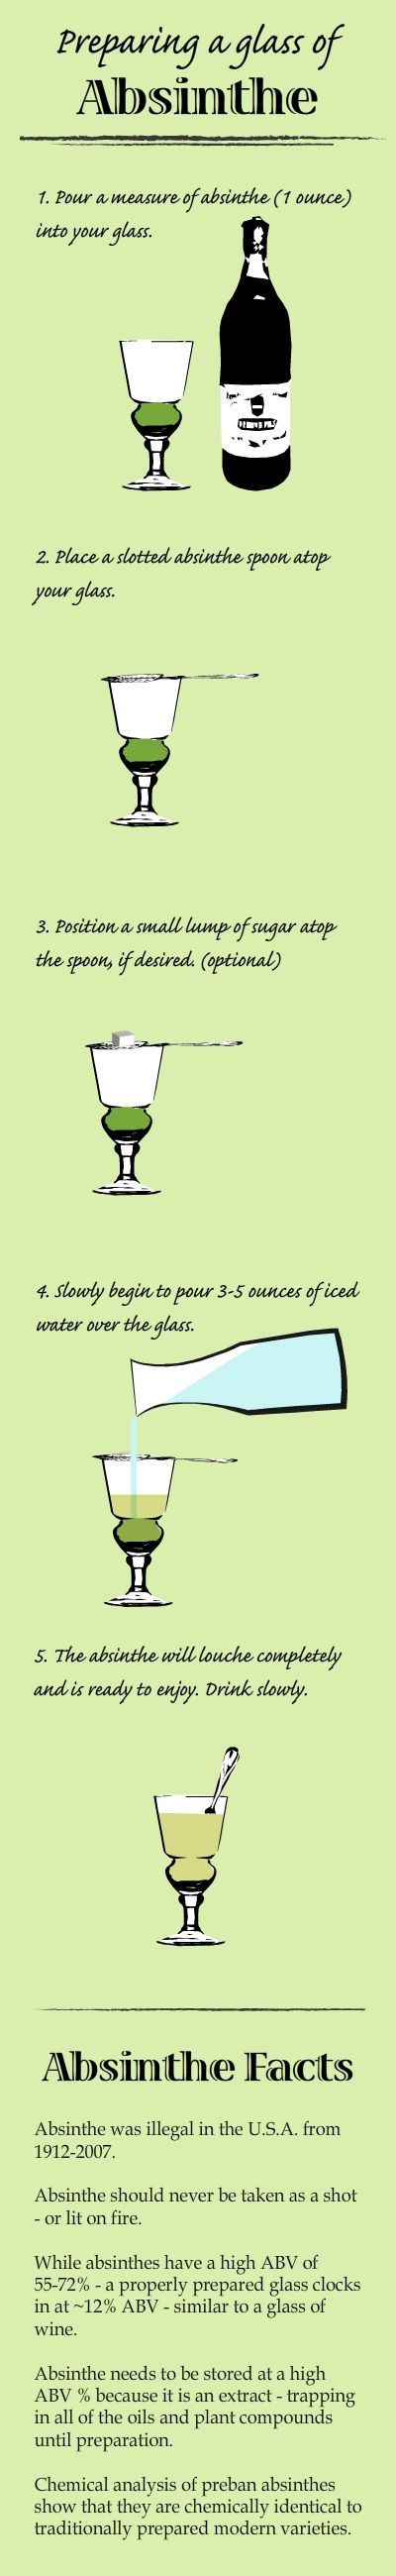 Created to help prepare newcomers to proper preparation and provide some solid facts about the Absinthe ritual, the way it was meant to be enjoyed.    Absinthe Infographic created by @JosephLabreque #absintheur #Absintheenthusiat